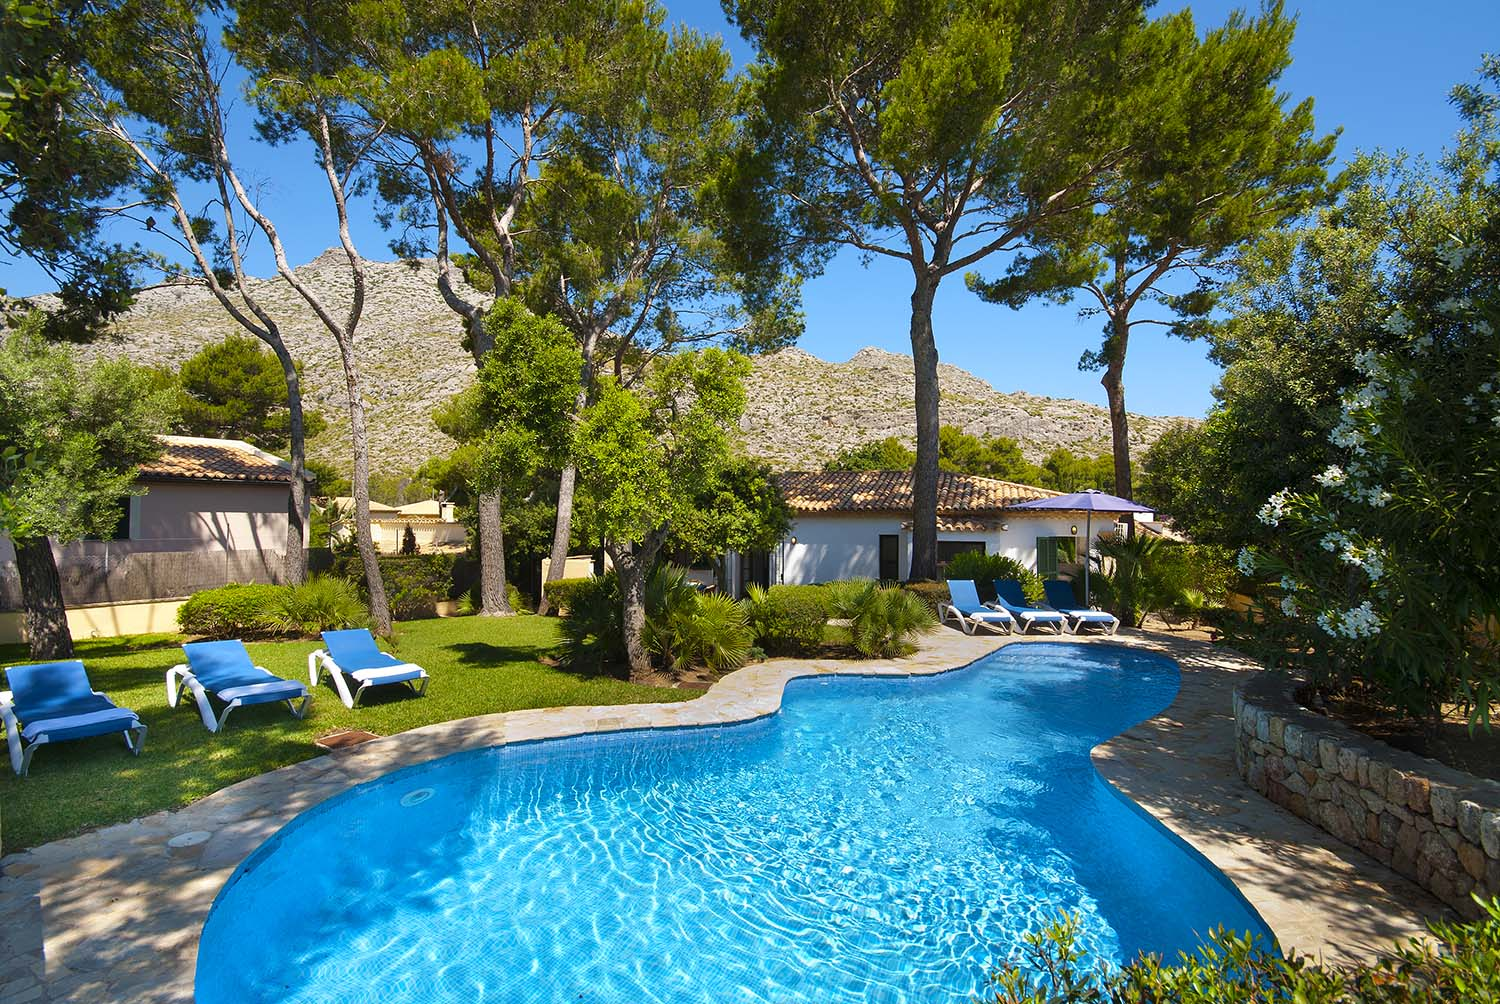 Can Domingo is a nice villa in Cala San Vicente close to the beach